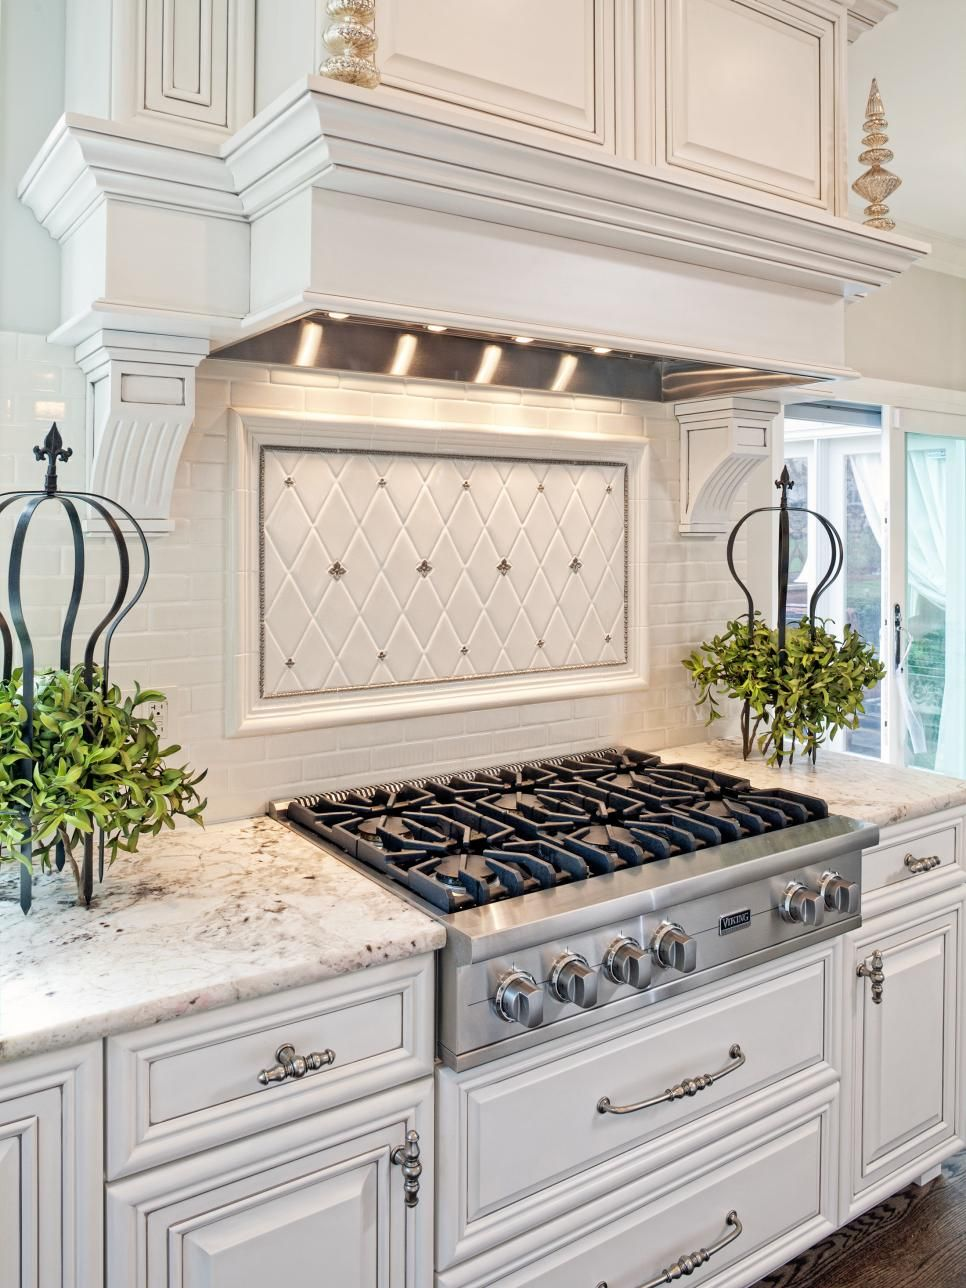 Light gray and silver accents and a white tile backsplash add